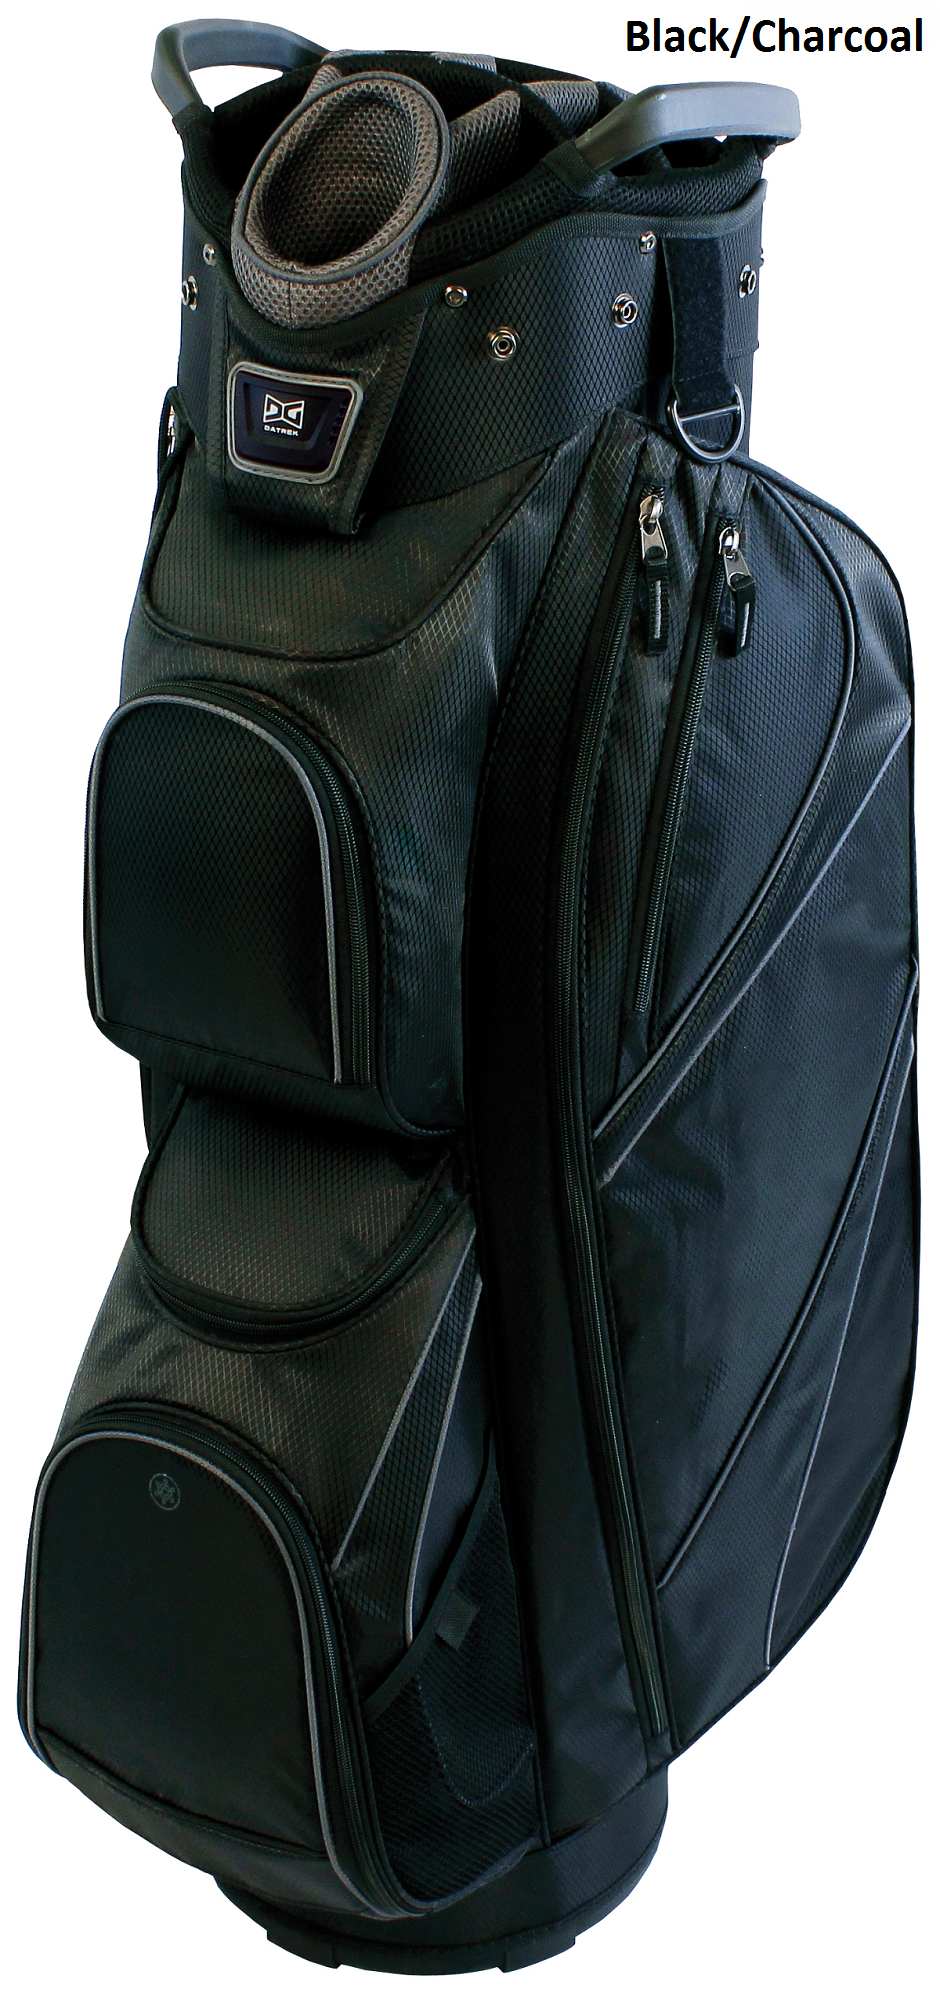 datrek golf bag: